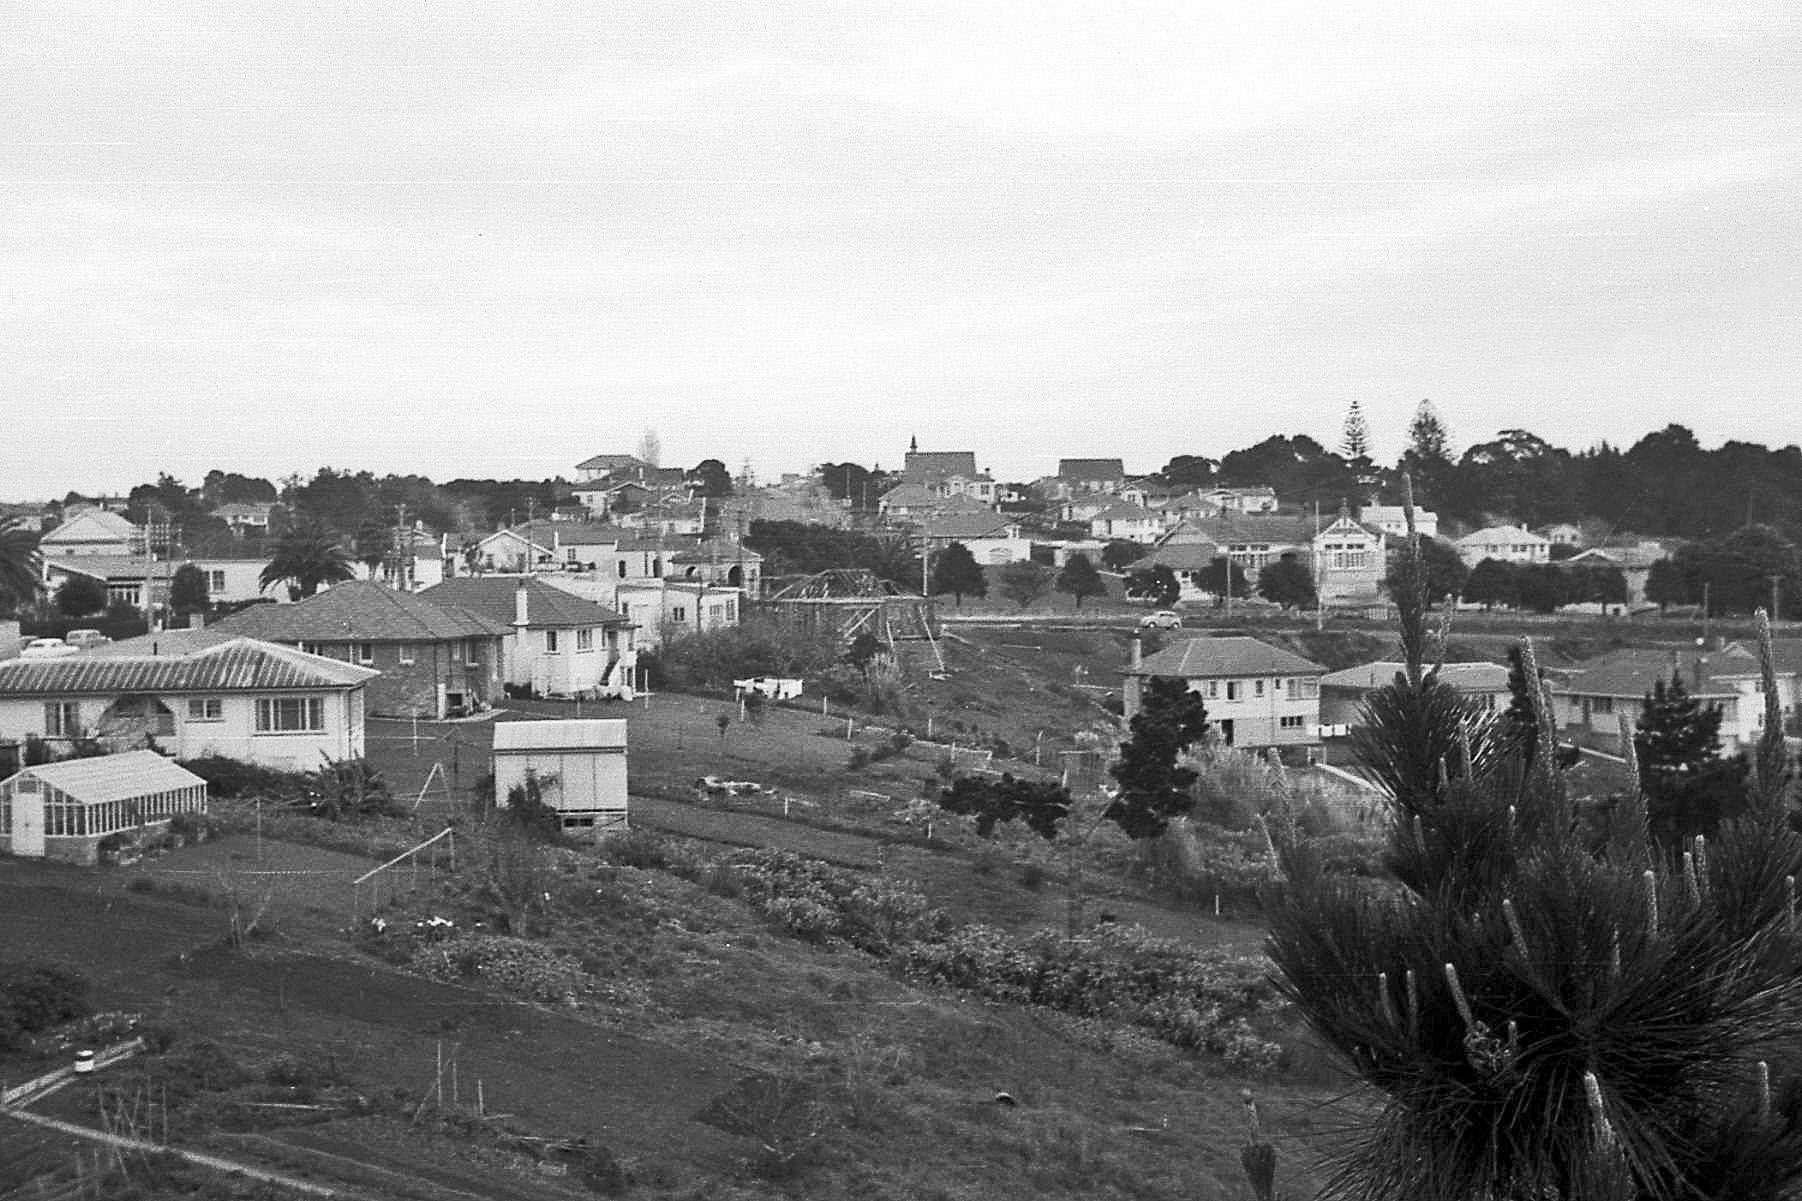 Rob Aspden's climbed a pine tree close to his home and captured this shot of Northcote Primary School. You can see the Presbyterian Church on the horizon and Lake Road across the centre. The distinctive Northcote War Memorial (1923) towards left centre. The concrete Primer block no longer exists. It was built in 1918 so this is a reminder that a centennial celebration will take place next year.   Image credit: Peter Aspen. 1955.